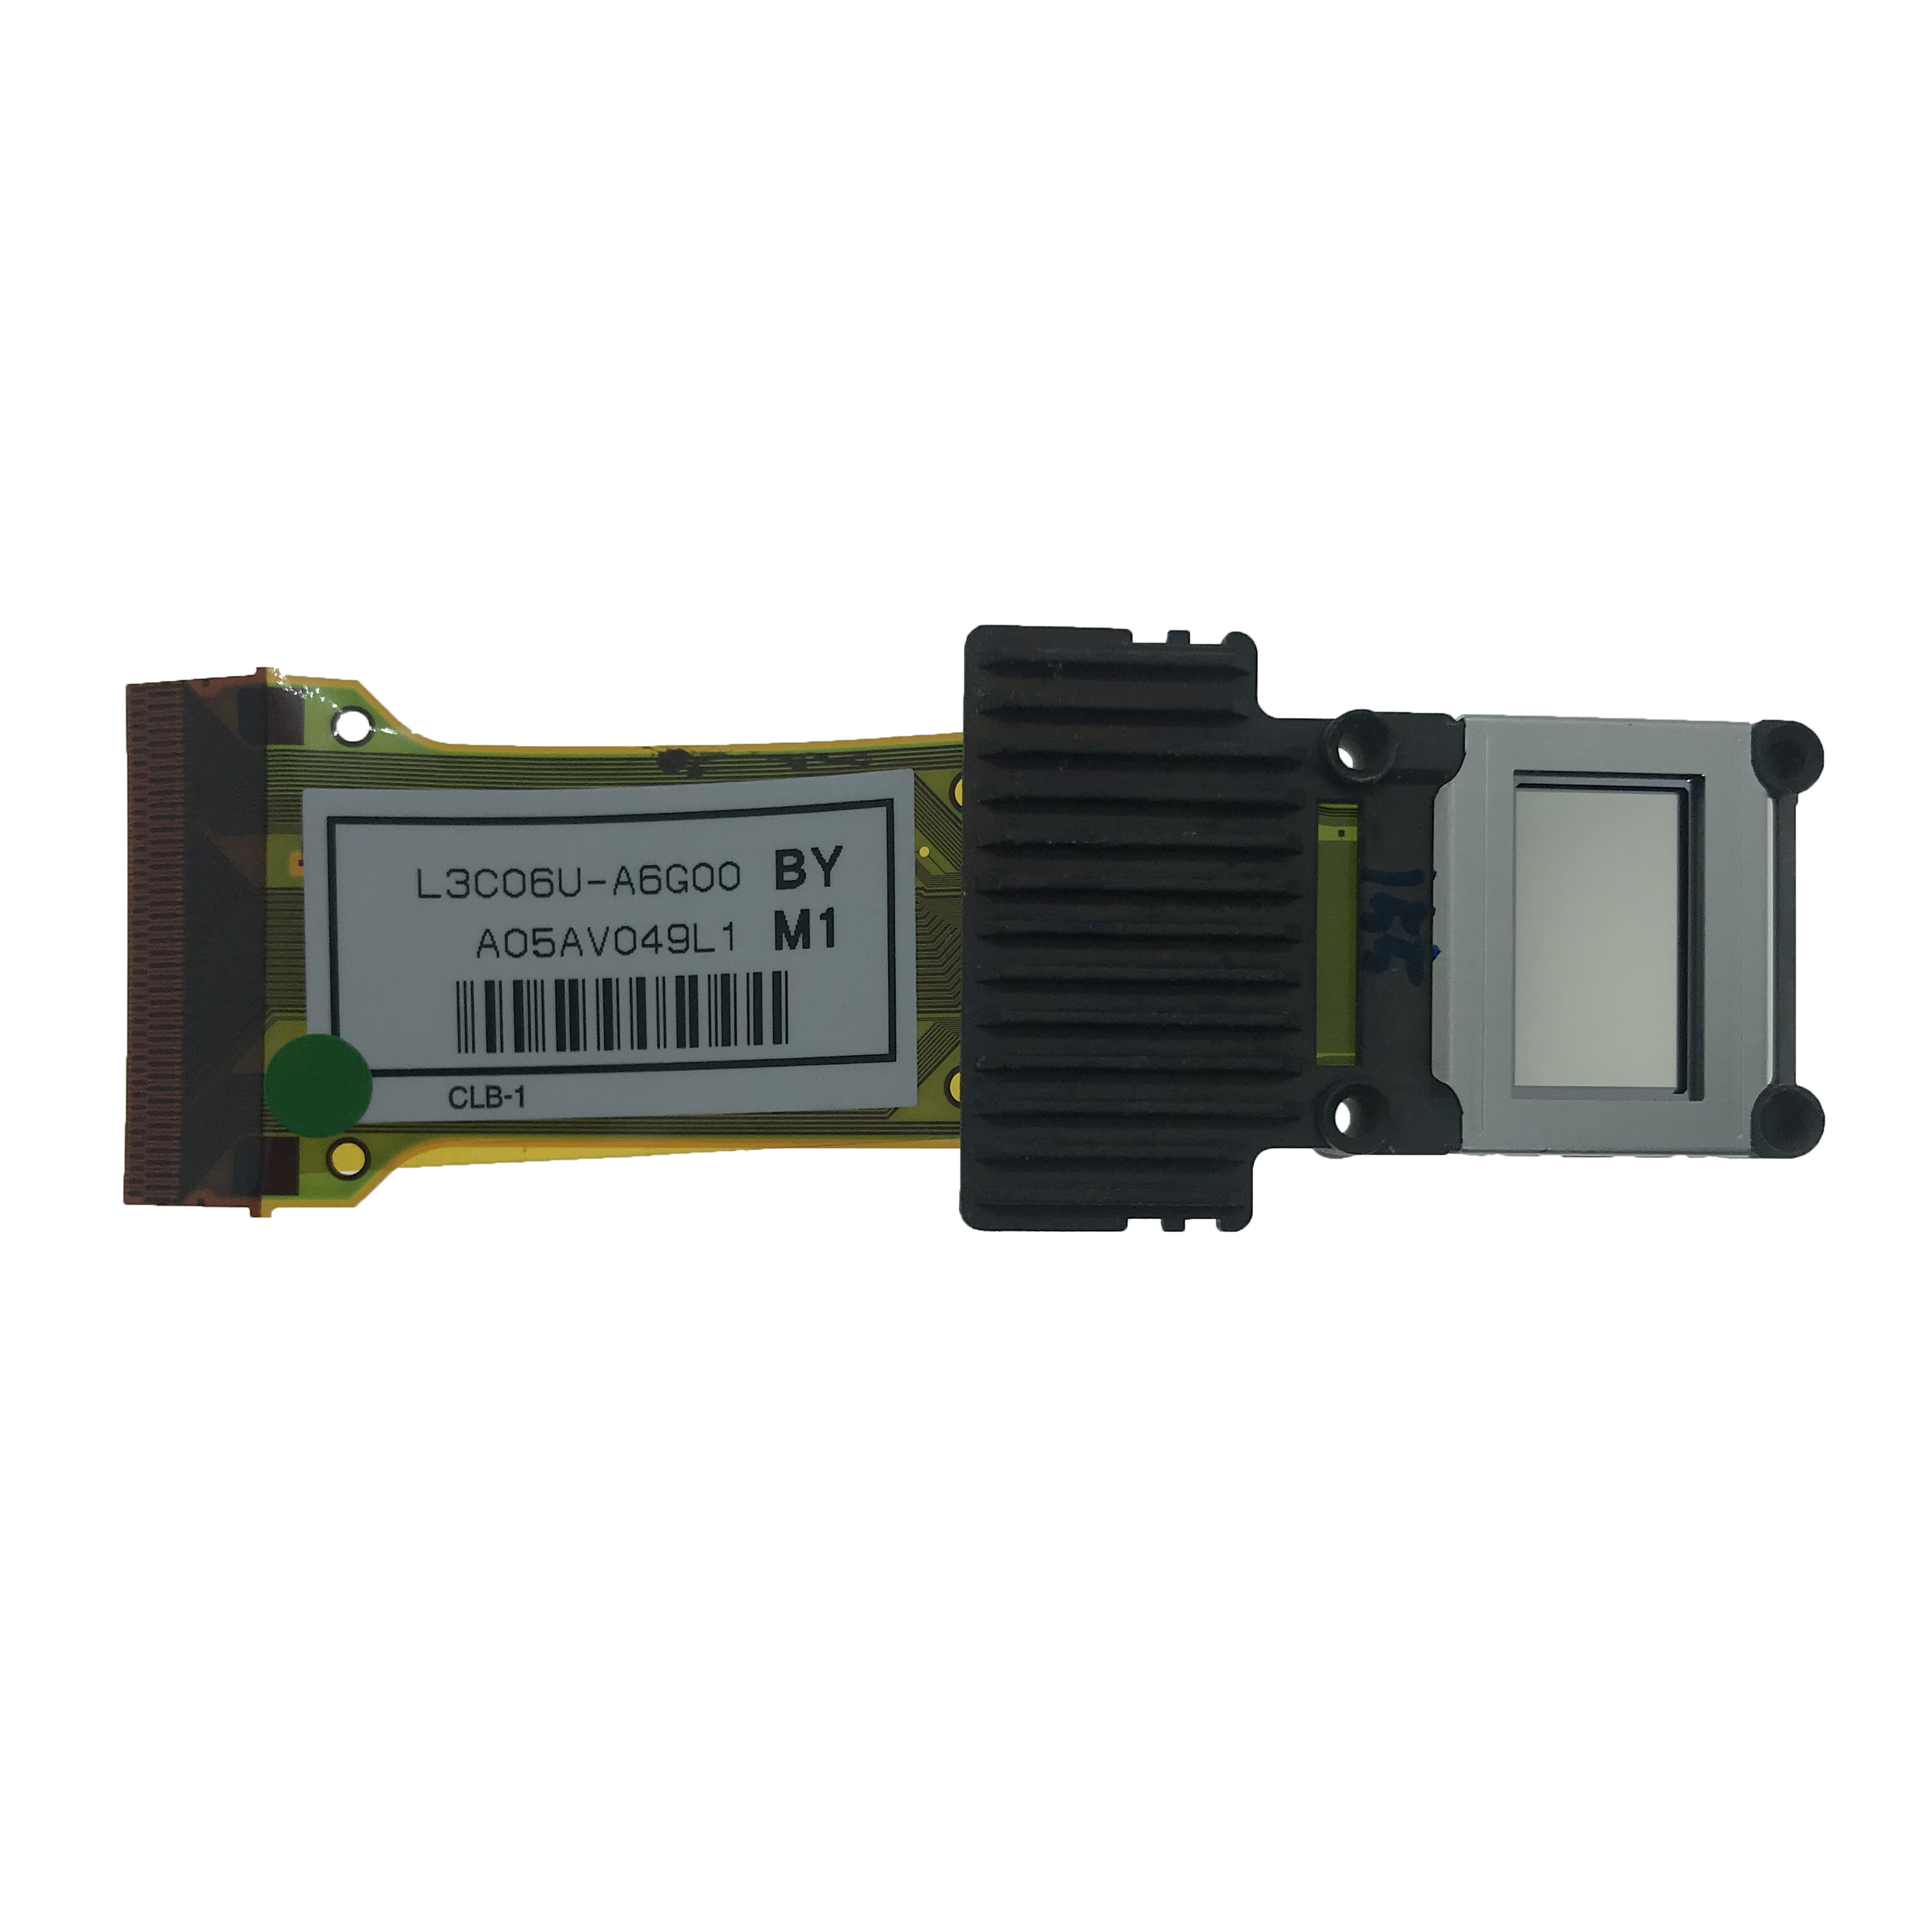 L3C06U A6G00/L3C06U-A6G00/A5G00 Projector LCD Panel Fit For EH-TW6500C/TW6000/TW5900 Projector Spare Parts Single Panel